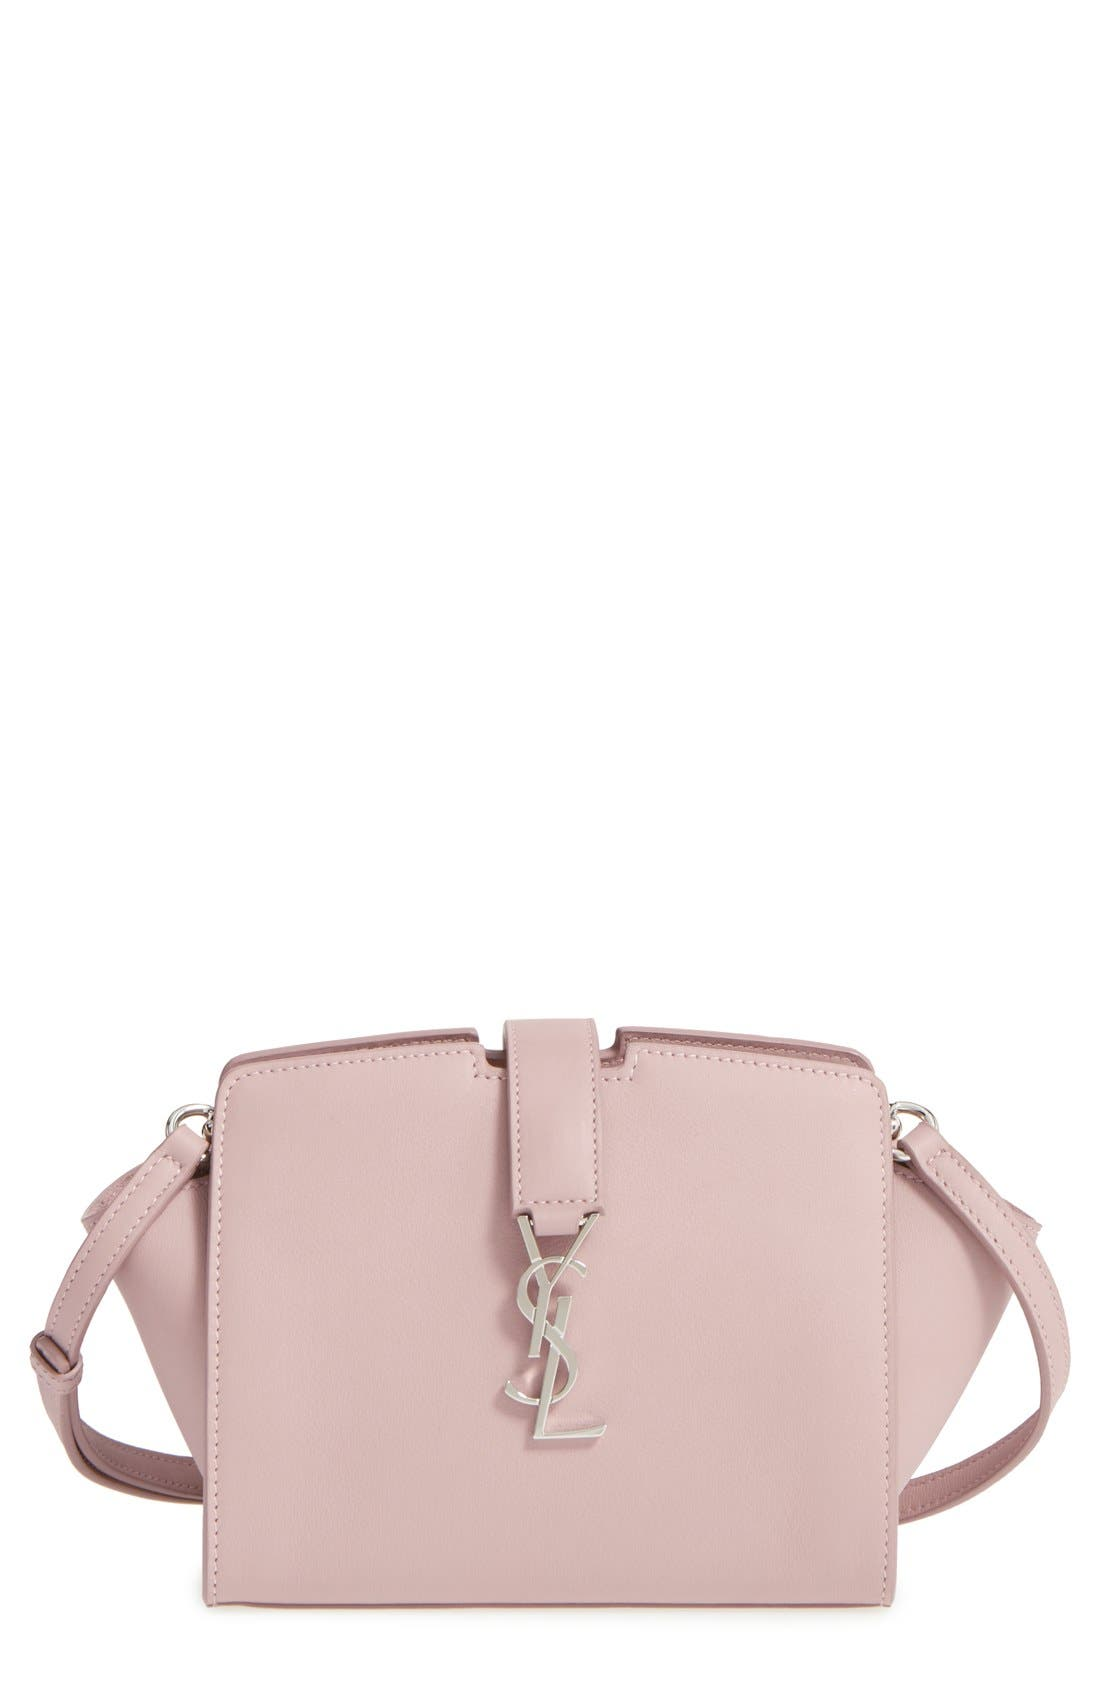 Toy Cabas Leather Crossbody Bag,                             Main thumbnail 1, color,                             Rose Antic